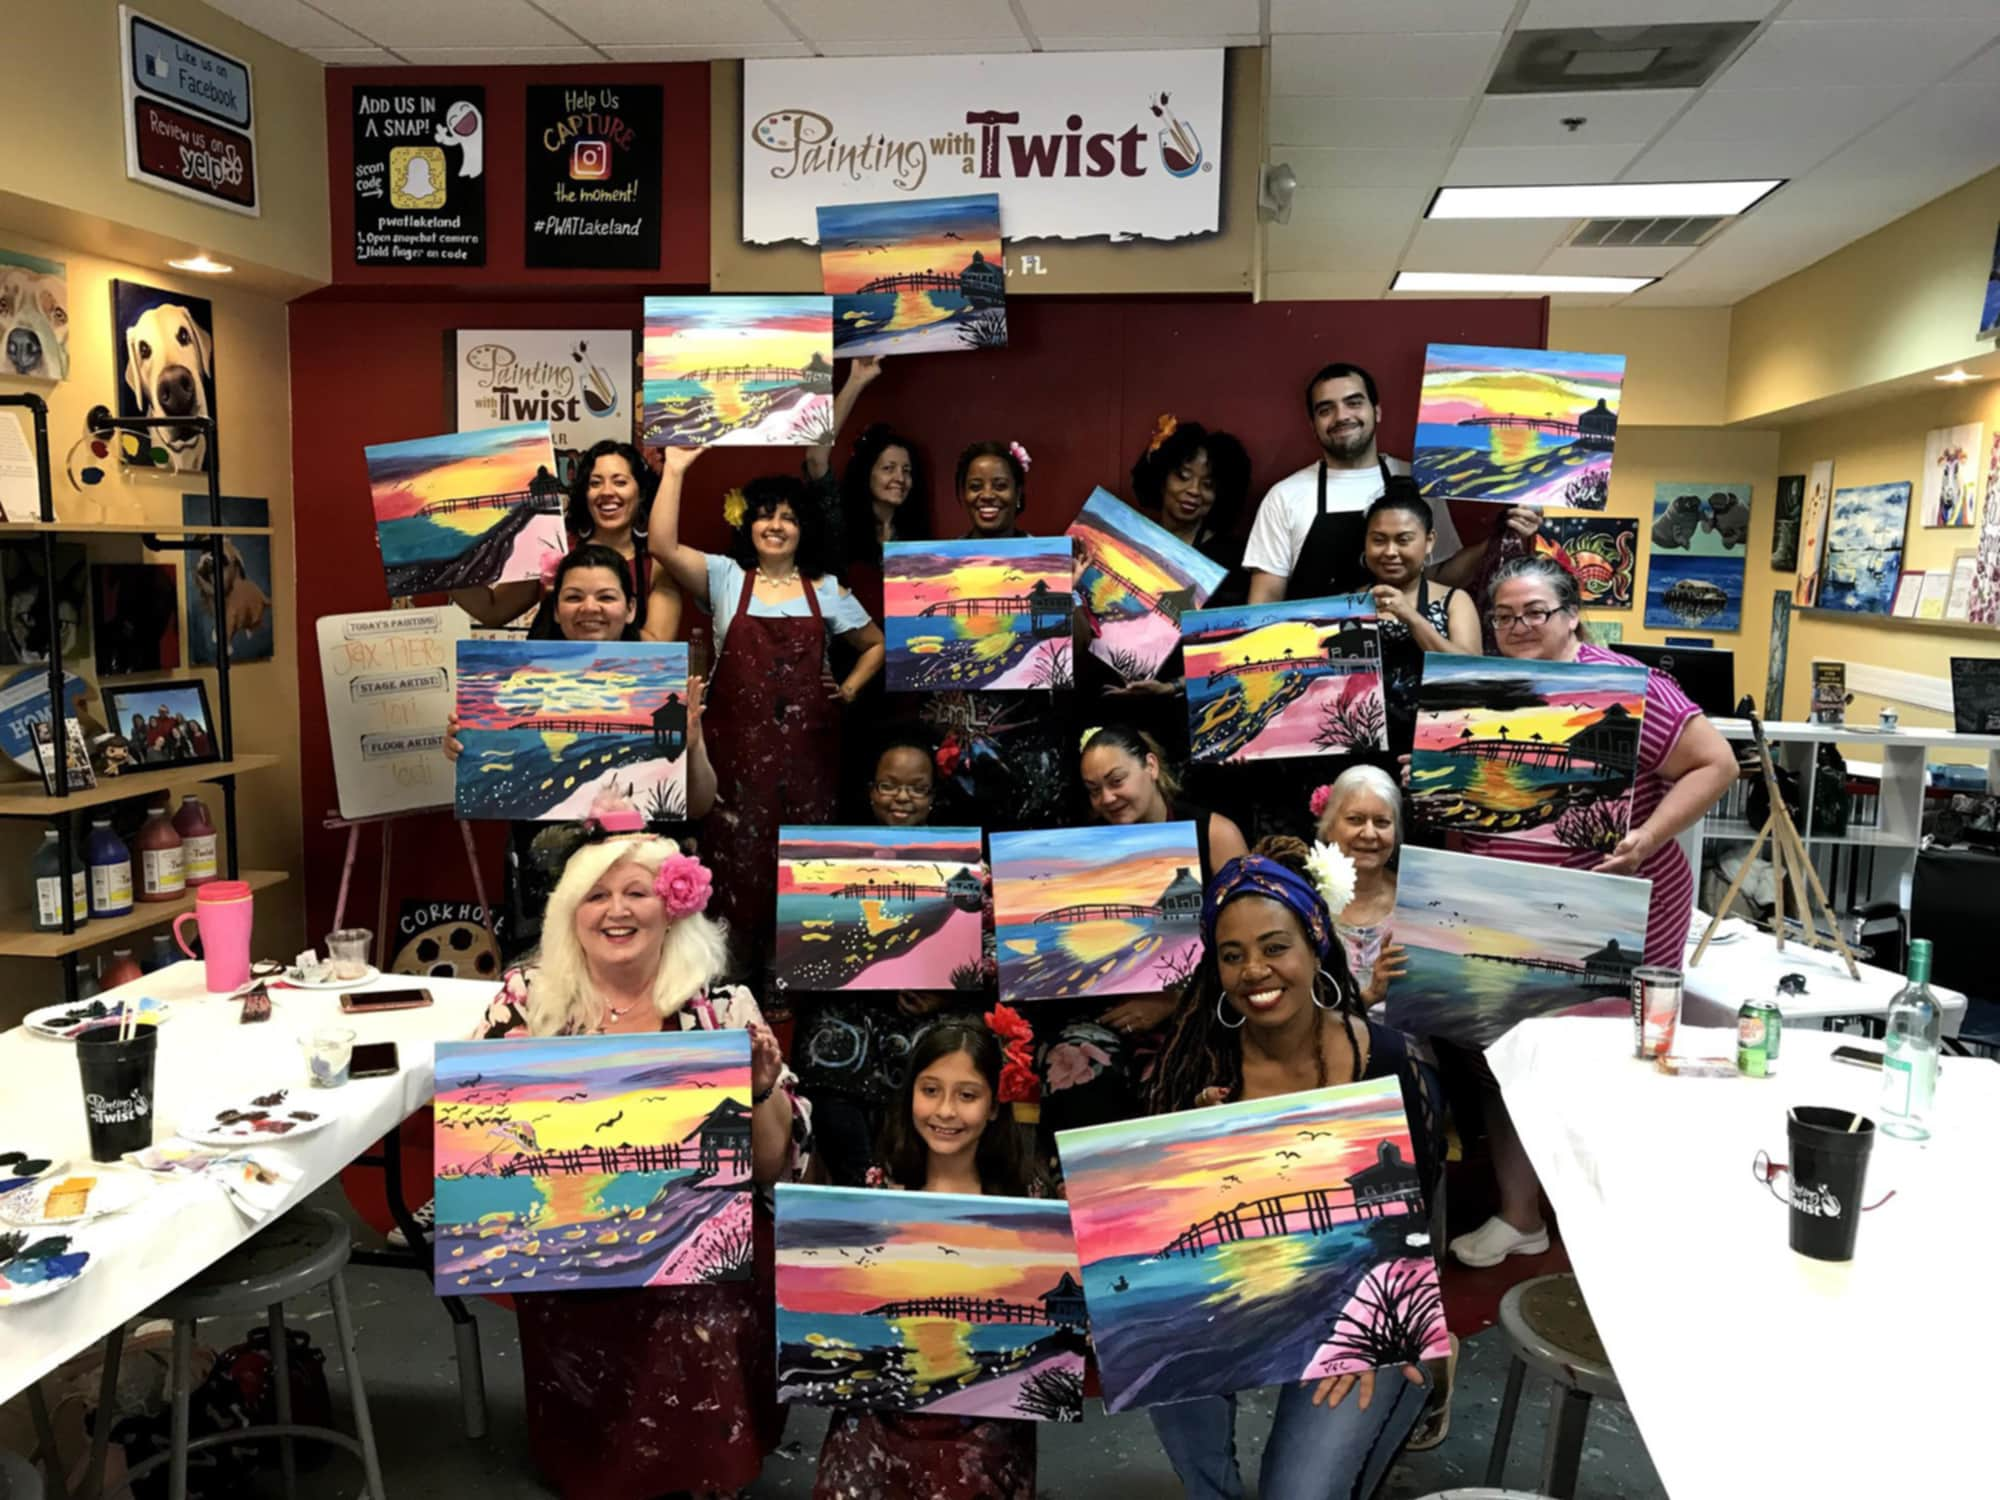 Group with finished paintings at Painting with a Twist in Lakeland, FL